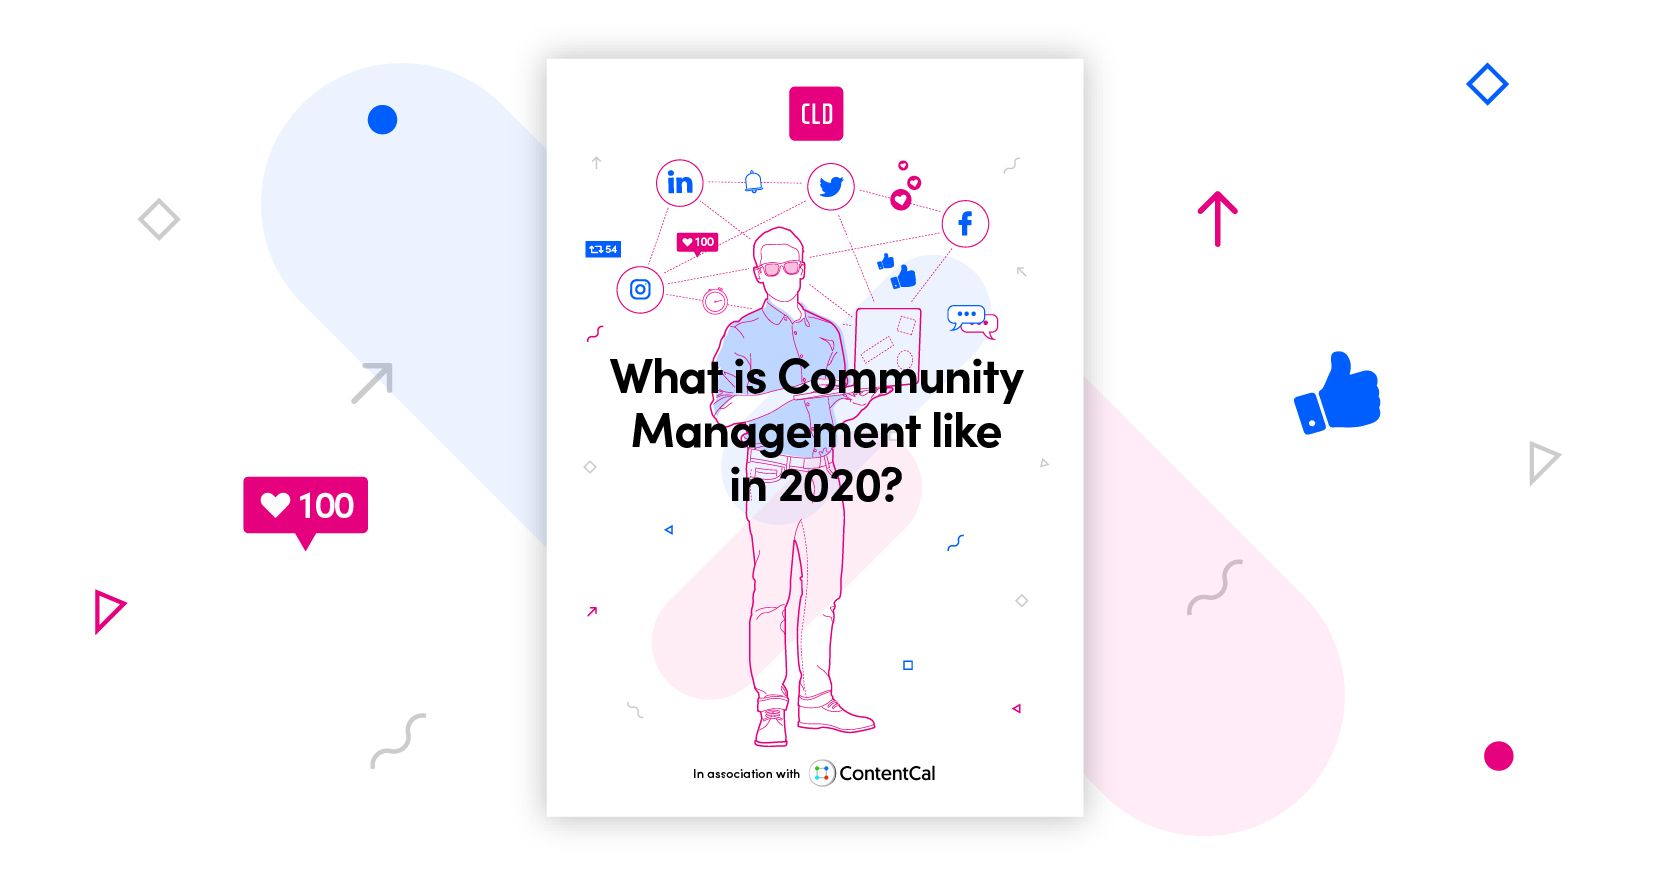 Mini-paper: What is Community Management like in 2020?